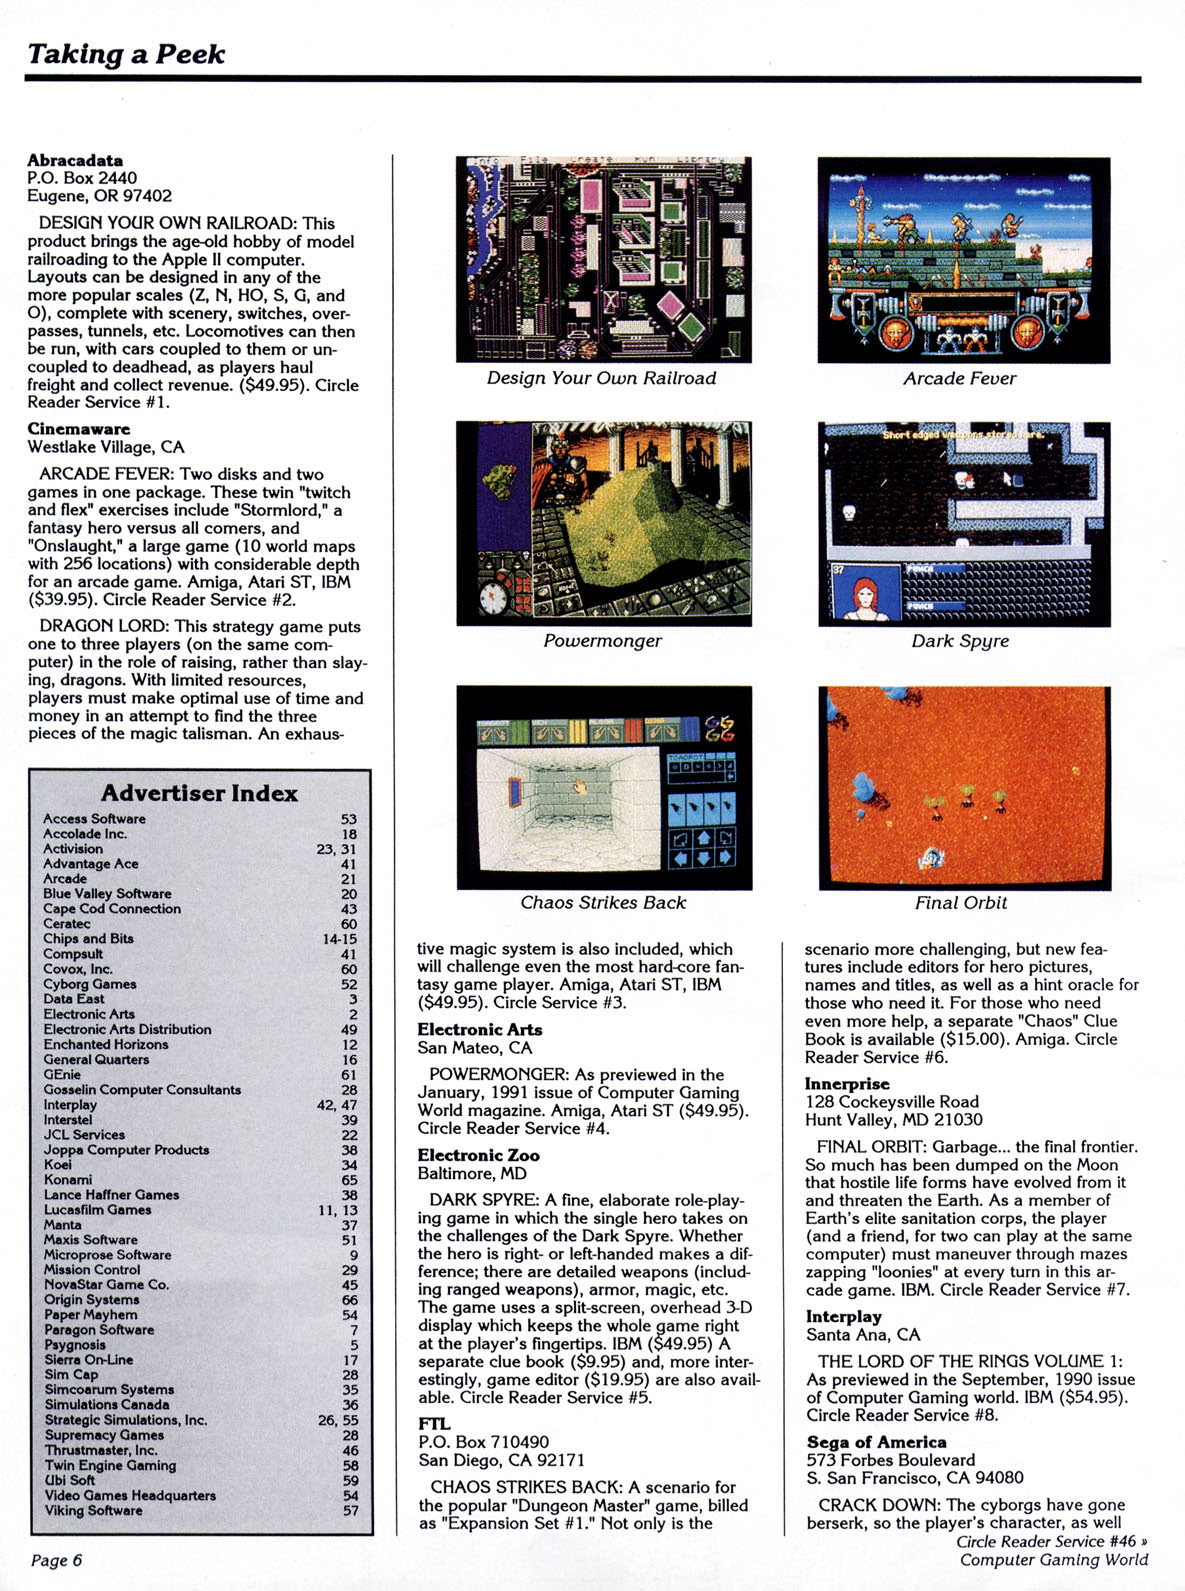 Chaos Strikes Back Preview published in American magazine 'Computer Gaming World', Issue #80 March 1991, Page 6